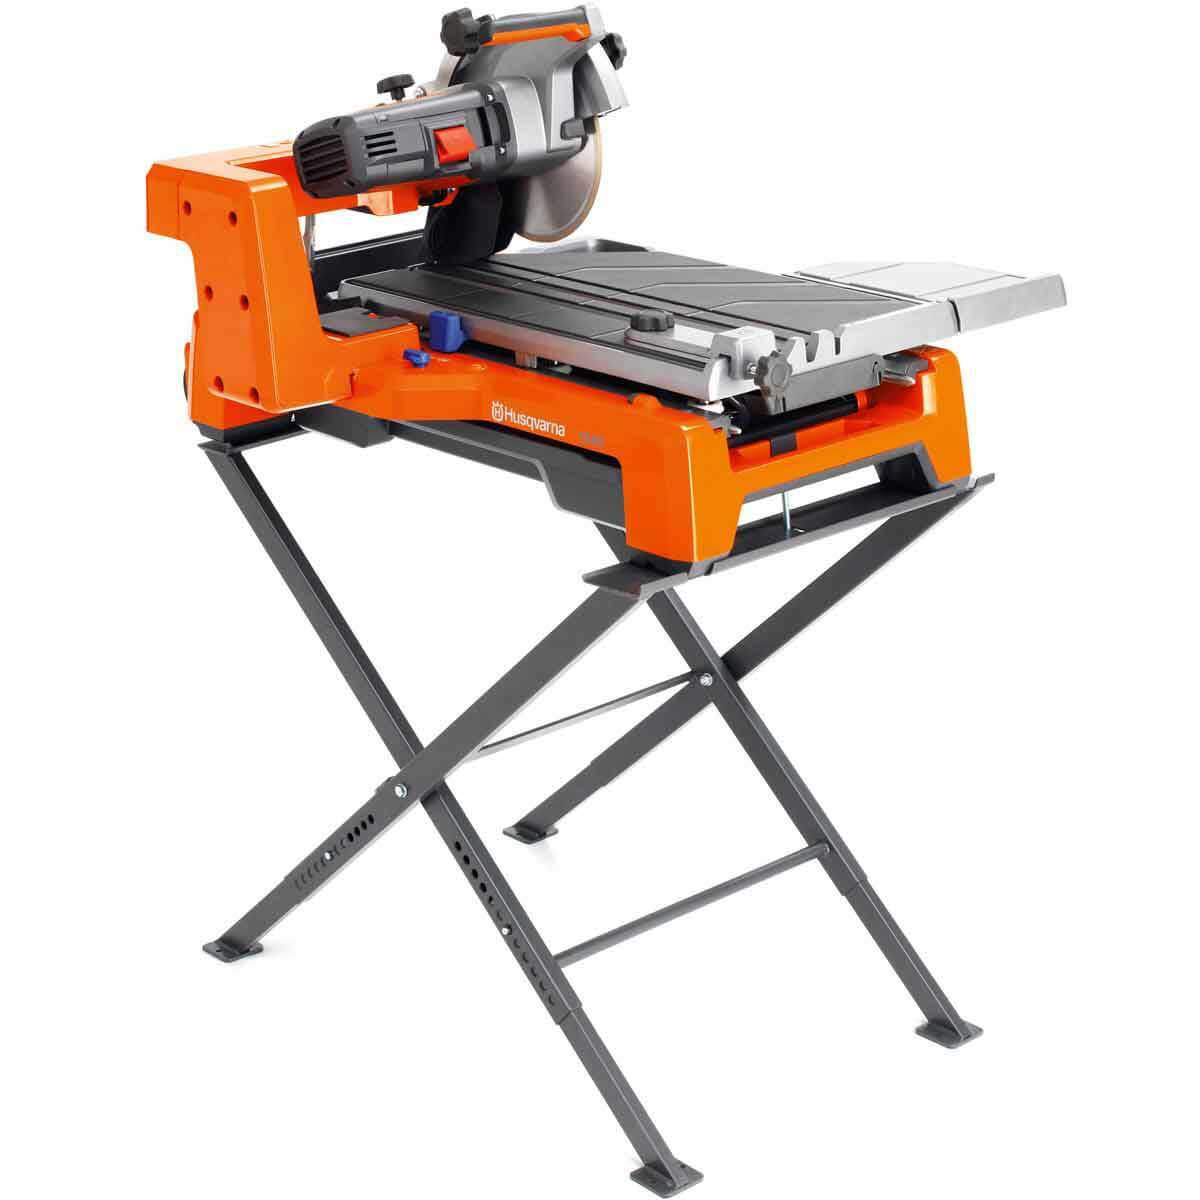 Husqvarna TS60 Tile Saw and Stand